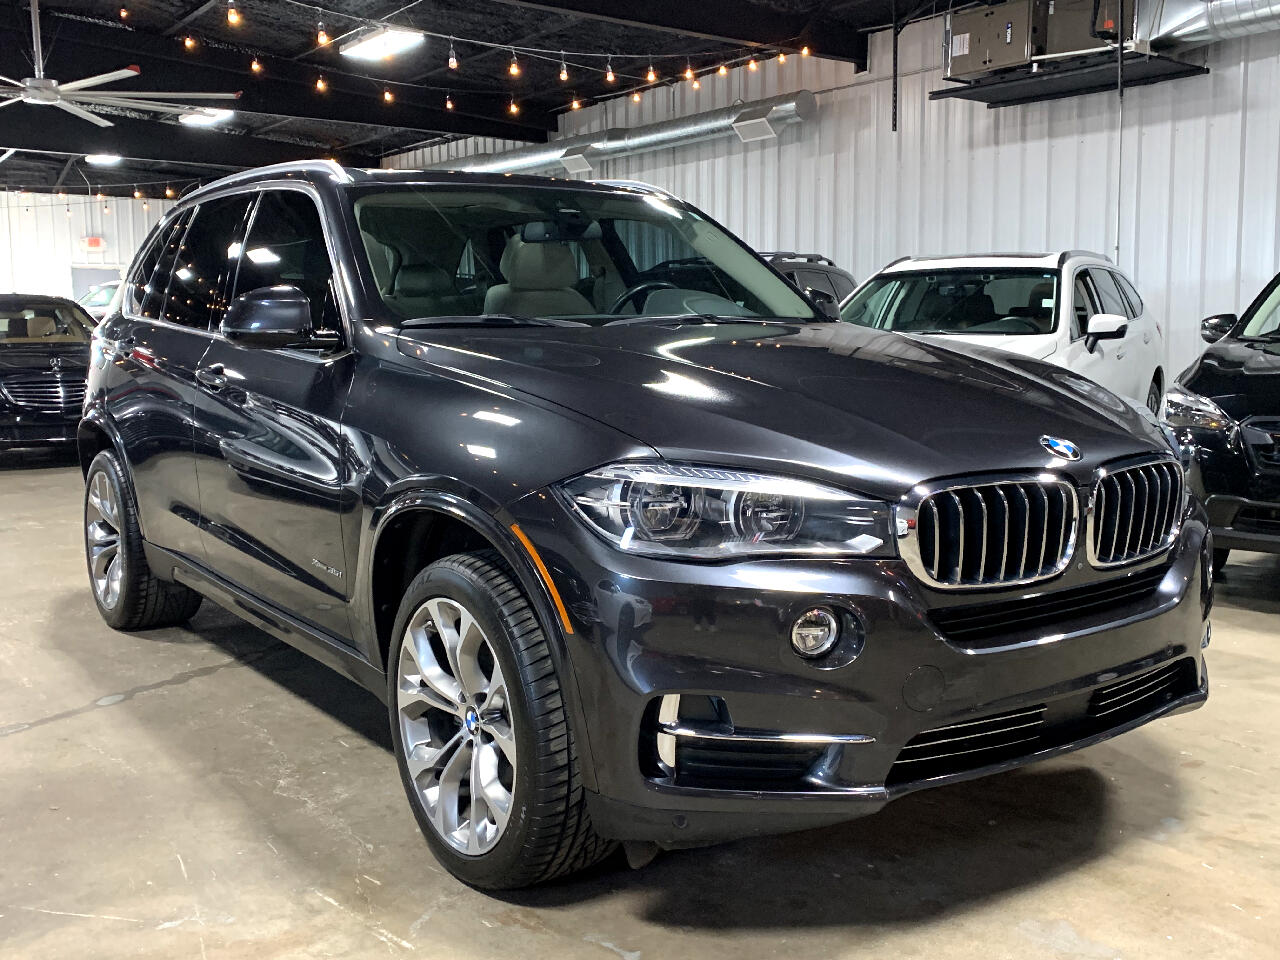 BMW X5 AWD 4dr xDrive35i 2016